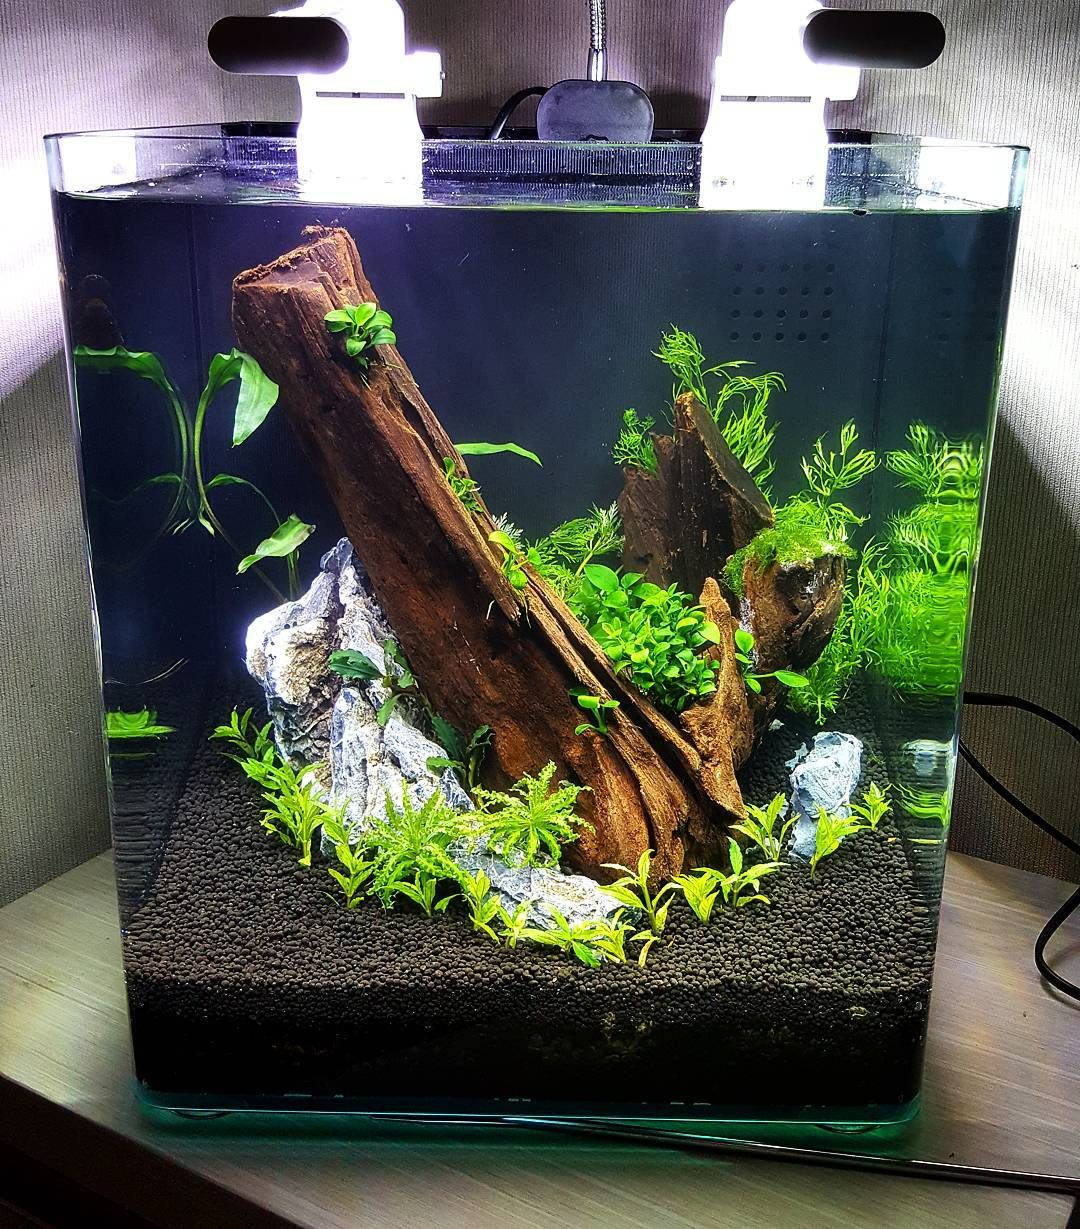 260 Likes 5 Comments Jeff 39 S Aquaworld Jeff Aquarist On Instagram Submerged Low Tech For Now Till I Get My C Susswasseraquarium Aquascaping Aquarien